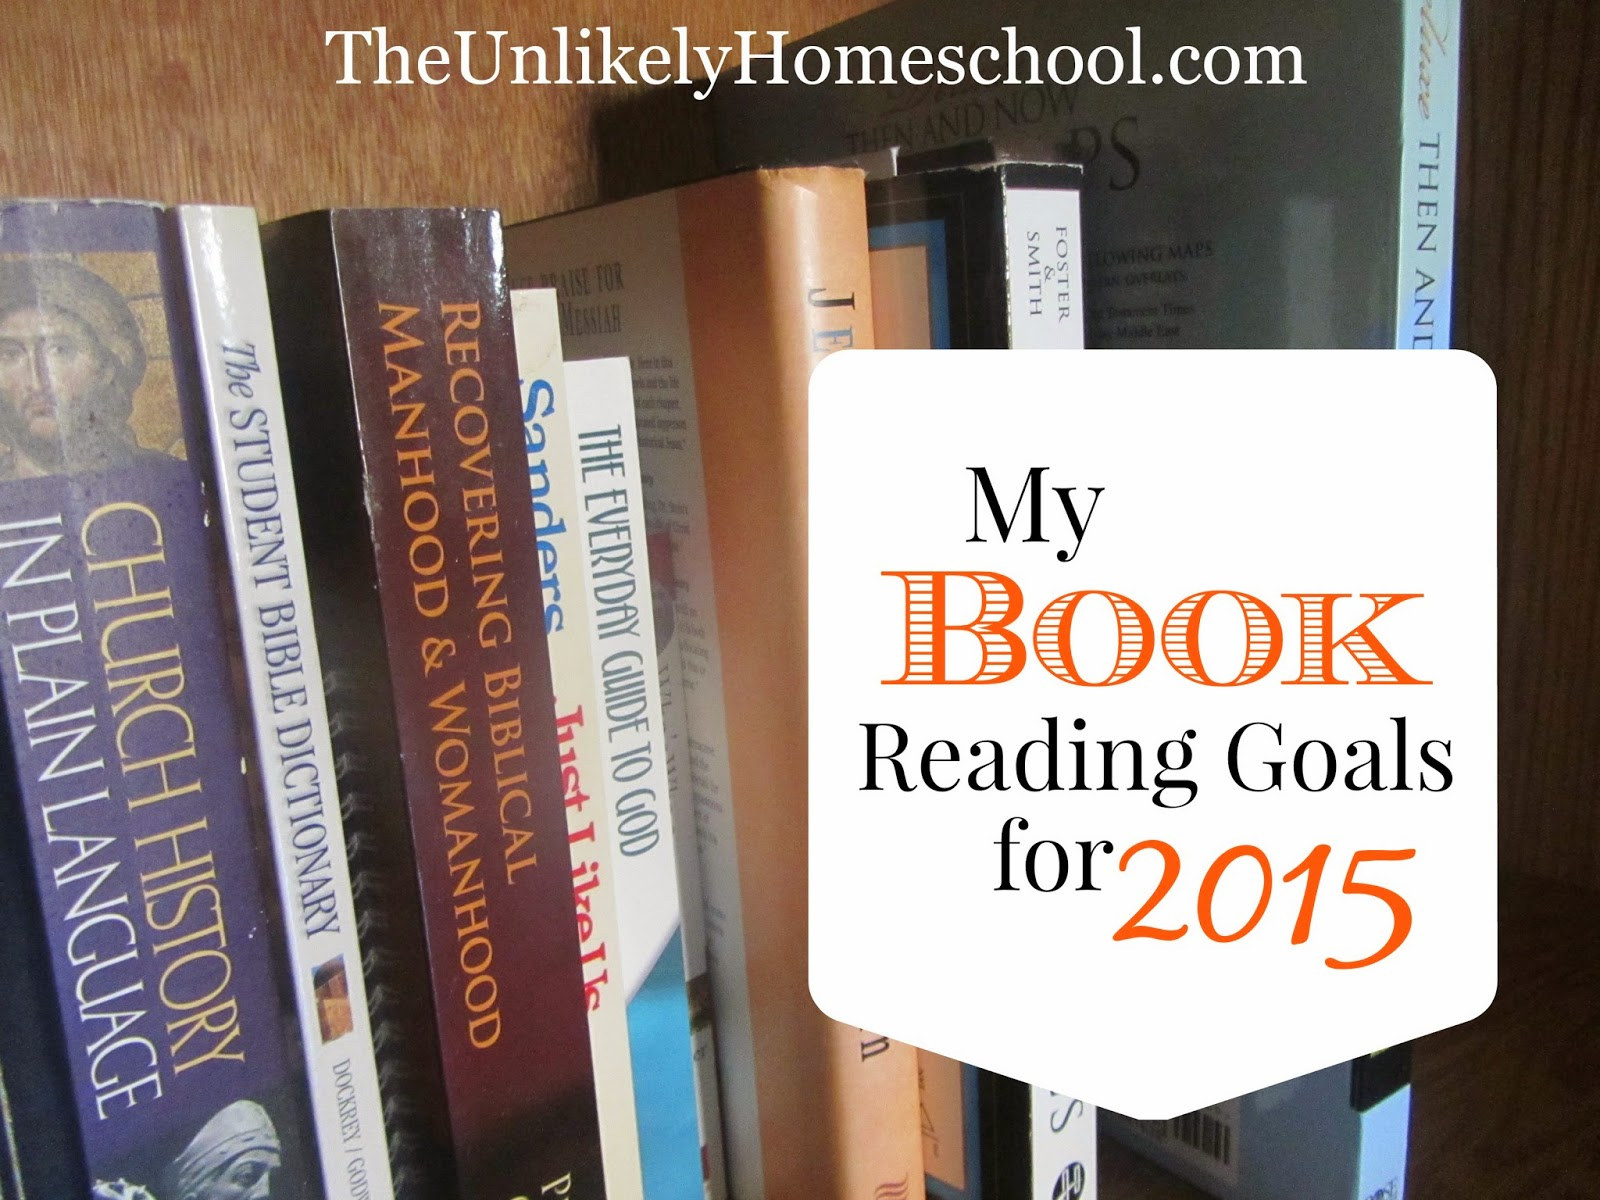 My Book Reading Goals for 2015 {The Unlikely Homeschool}